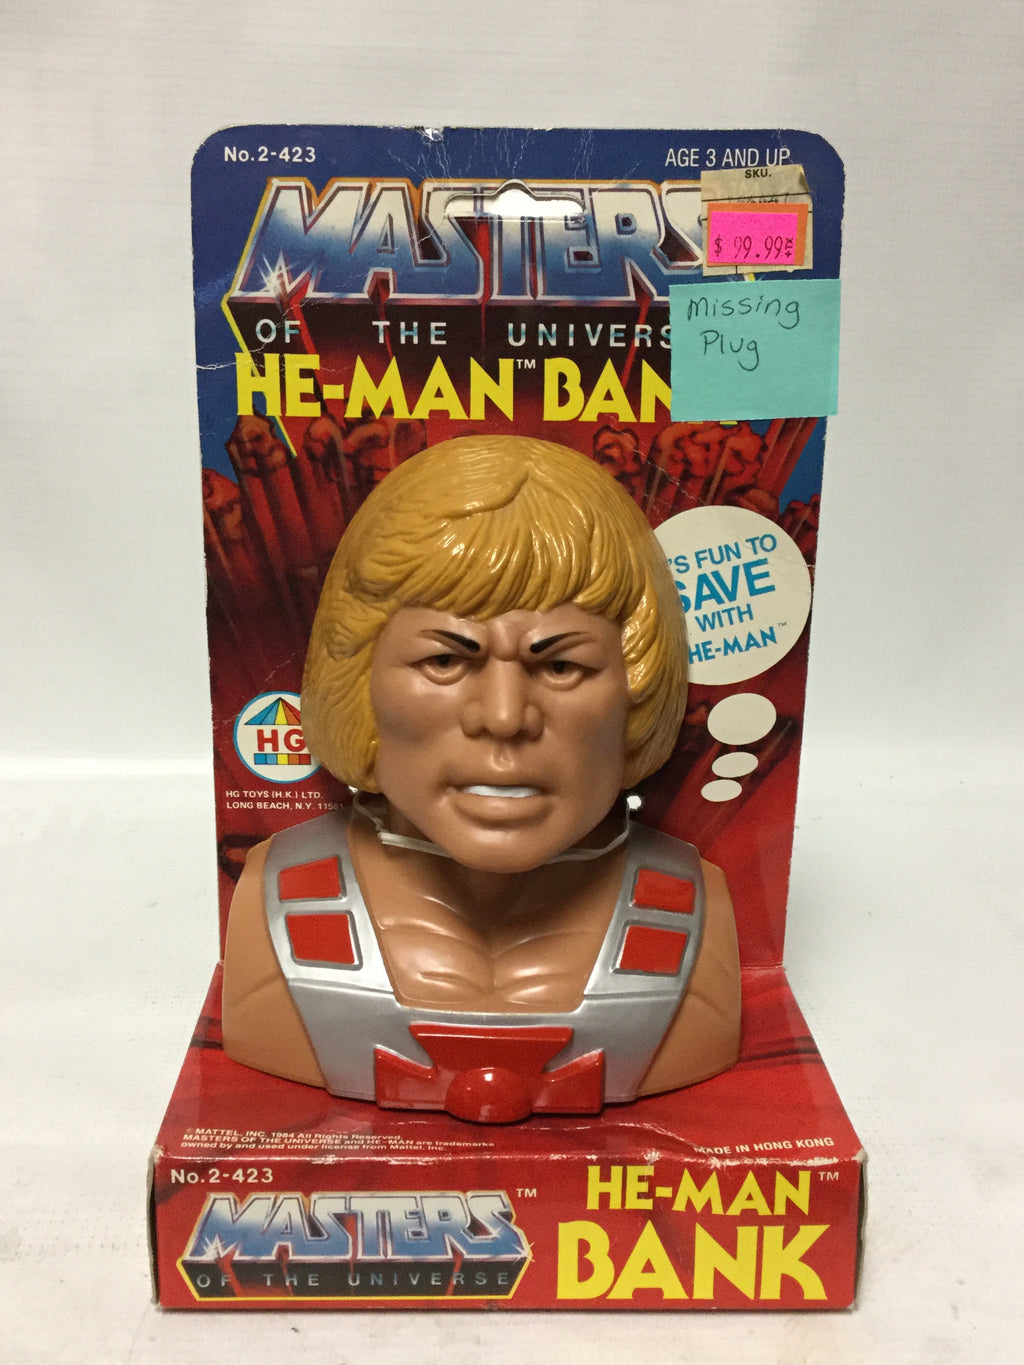 HG Masters Of The Universe He-Man Bank